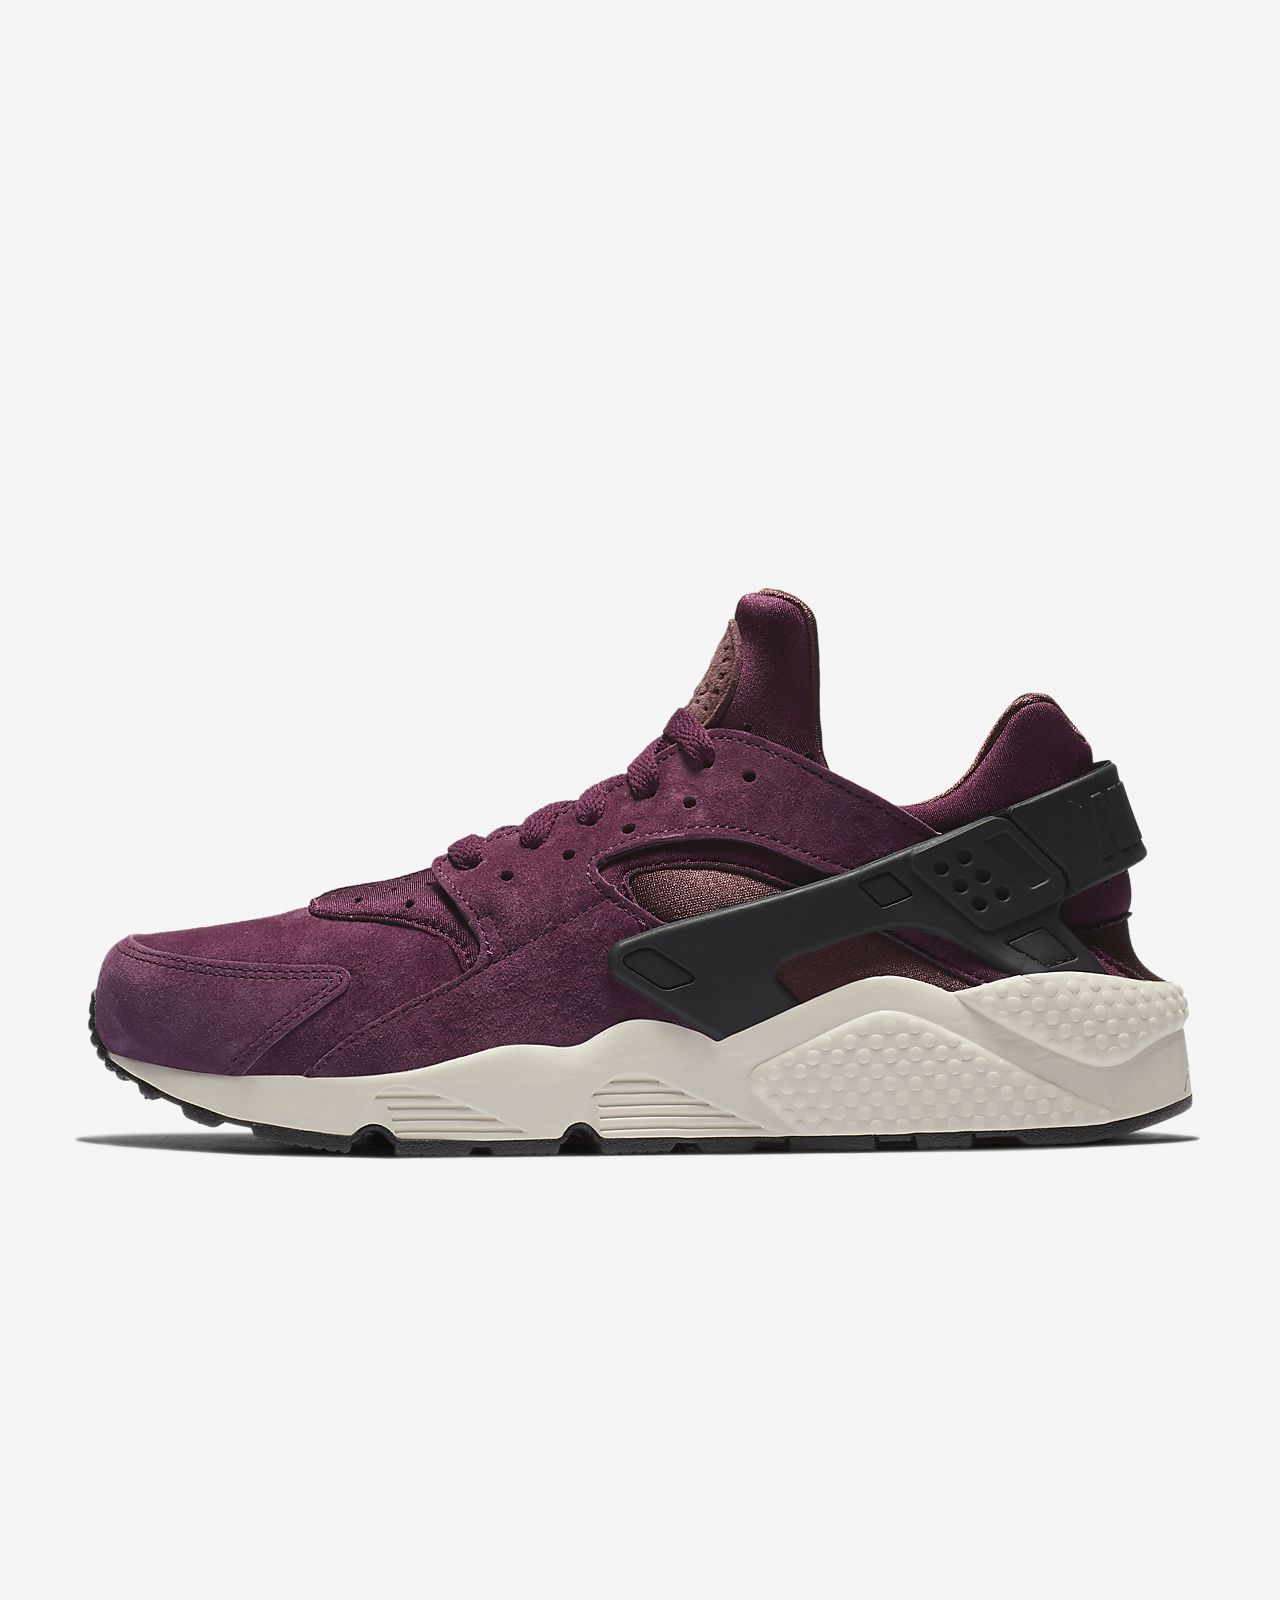 half off 10b59 0efdf ... Nike Air Huarache Premium Mens Shoe